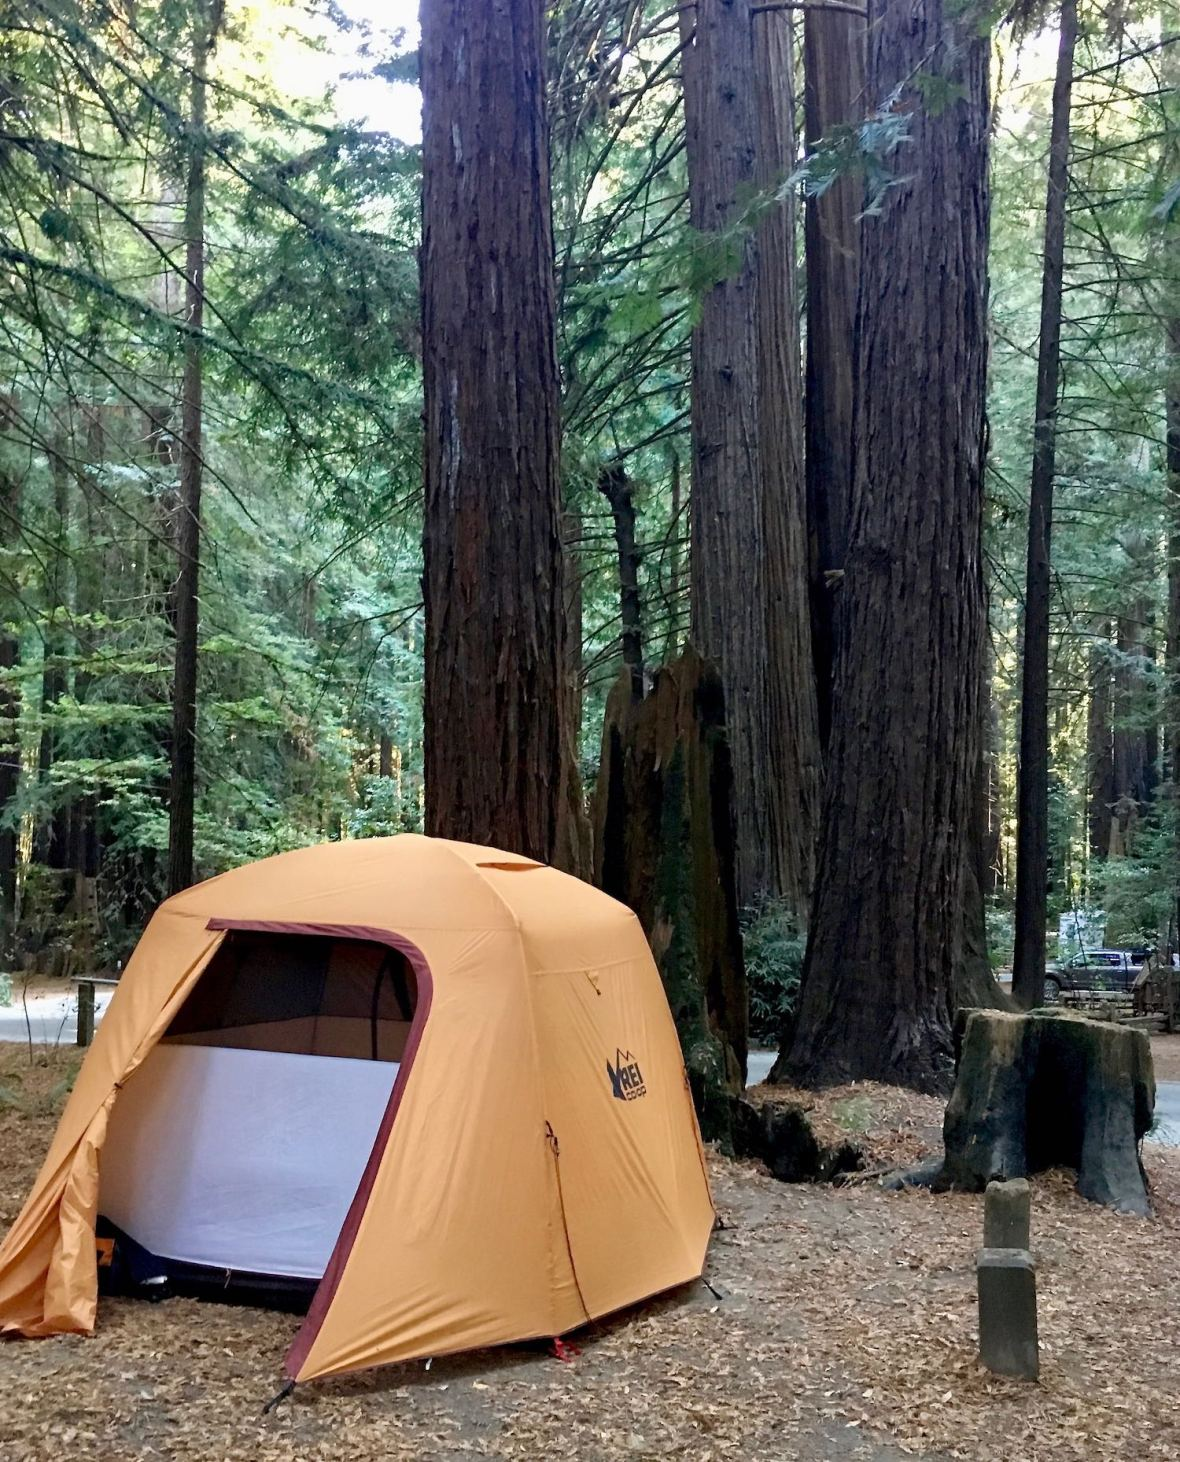 Our campsite under the towering redwoods in Burlington campground in Humboldt Redwoods State Park